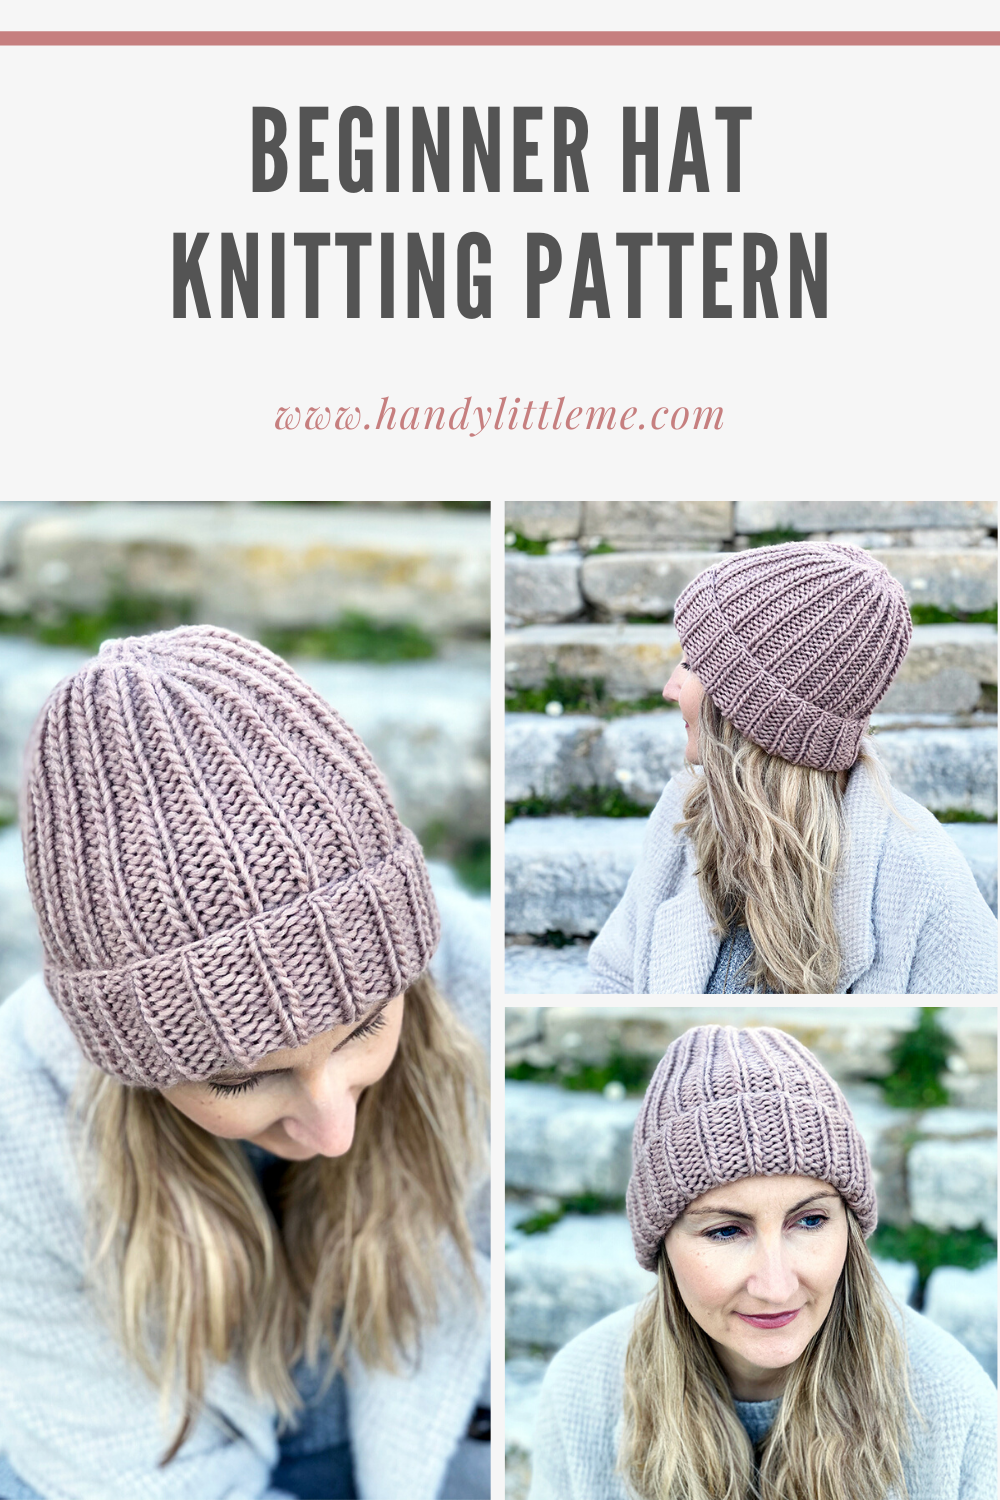 How To Knit A Hat With Straight Needles Beanie Knitting Patterns Free Hat Knitting Patterns Knitting Patterns Free Hats